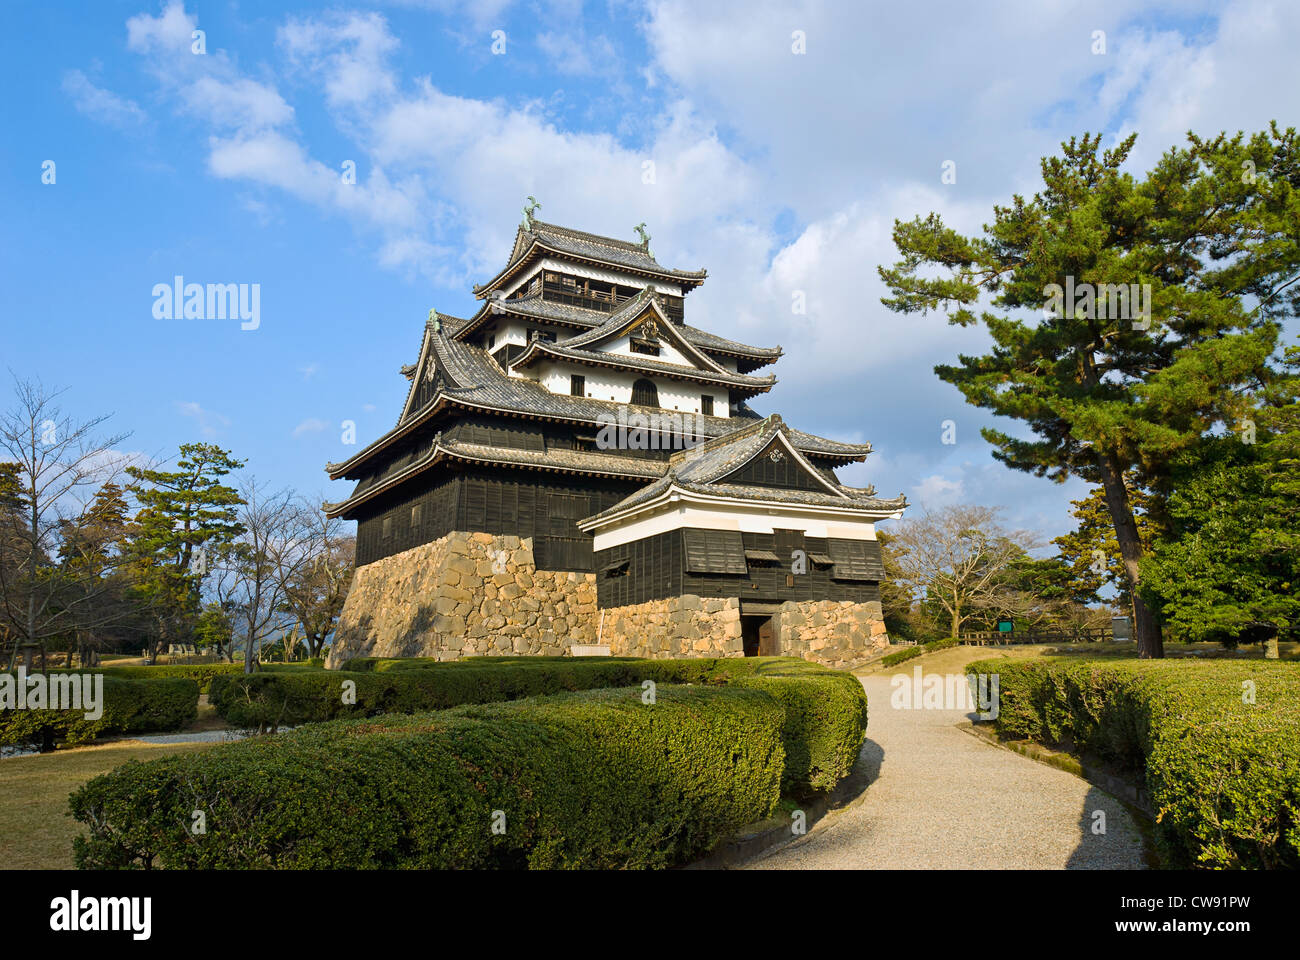 Matsue Castle, Shimane Prefecture, Japan. Medieval Castle made of wood, c. 1622. Stock Photo